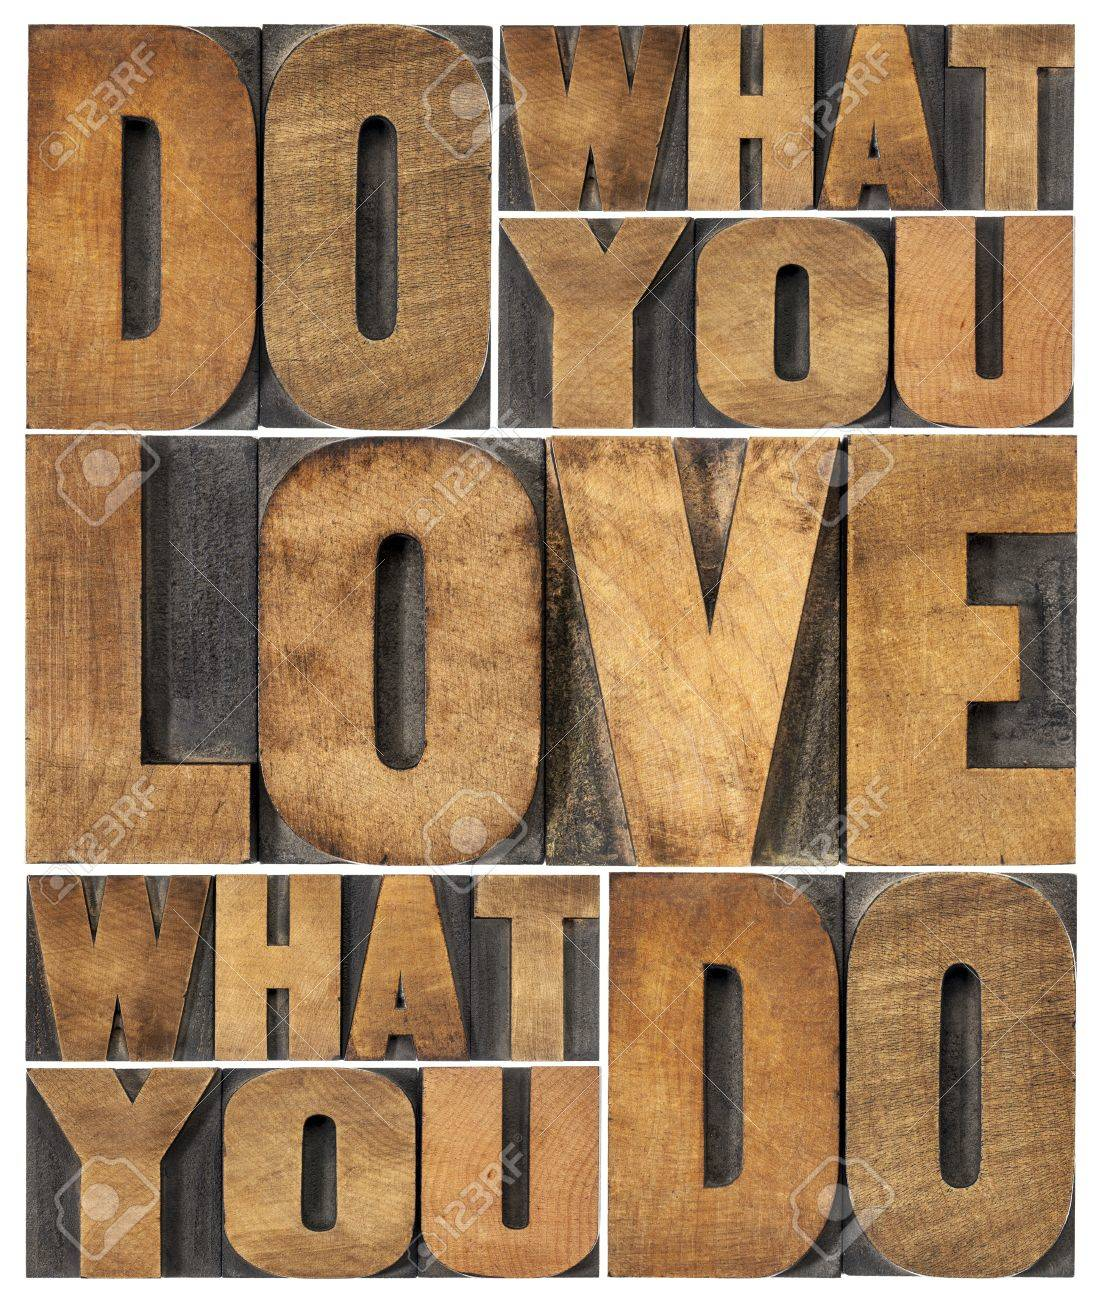 do what you love, love what you do - motivational word abstract in vintage letterpress wood type printing blocks Stock Photo - 18942675